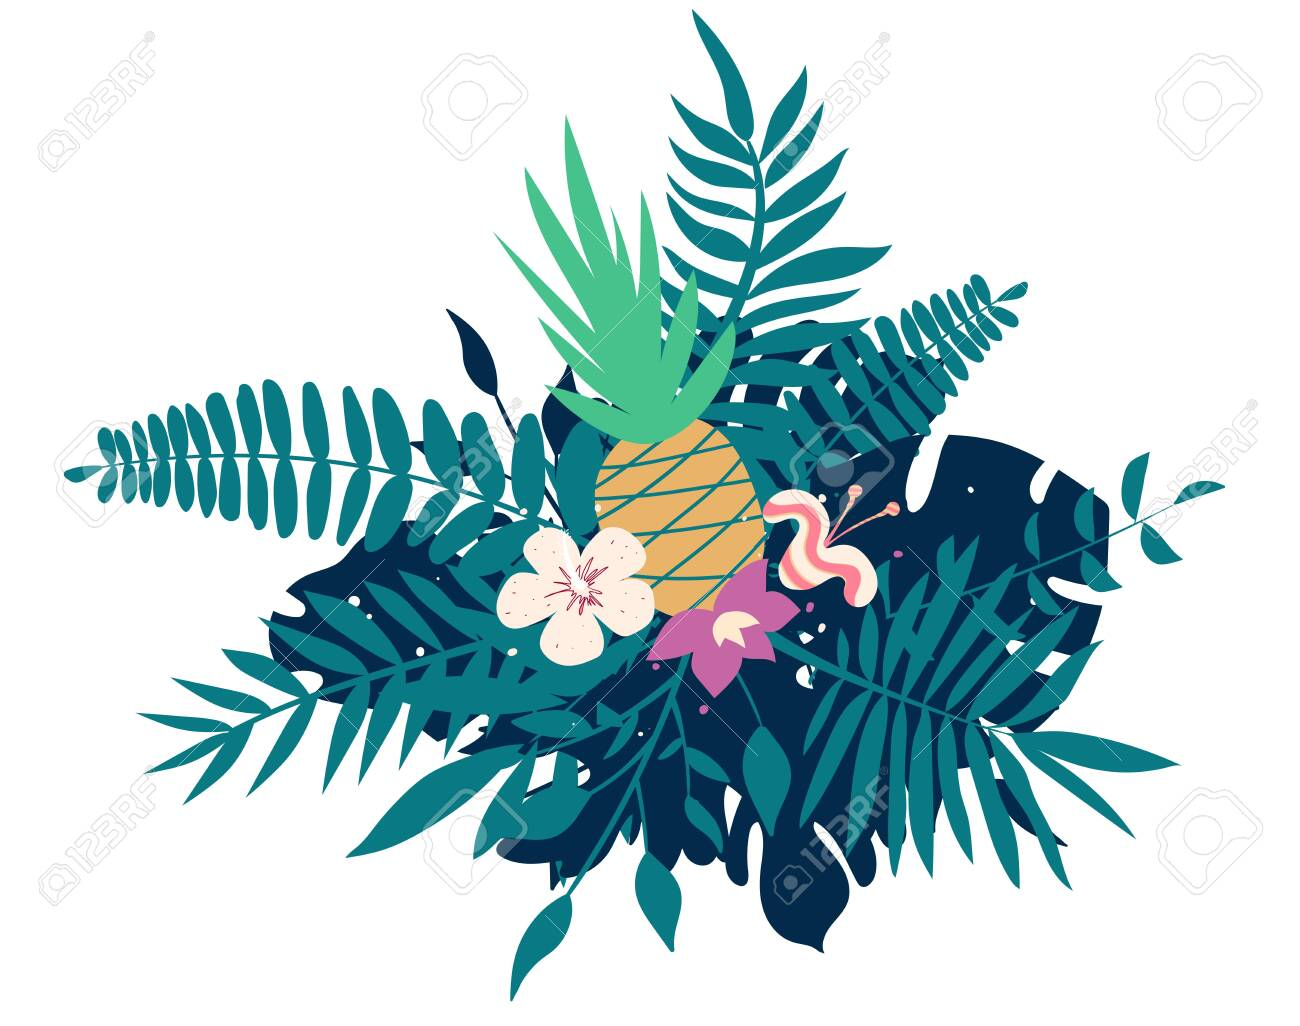 Pineapple, exotic flowers, palm leaves, jungle leaf, orchid, tropical art composition. Vector exotic illustration, decorative Hawaiian bouquet - 127956728